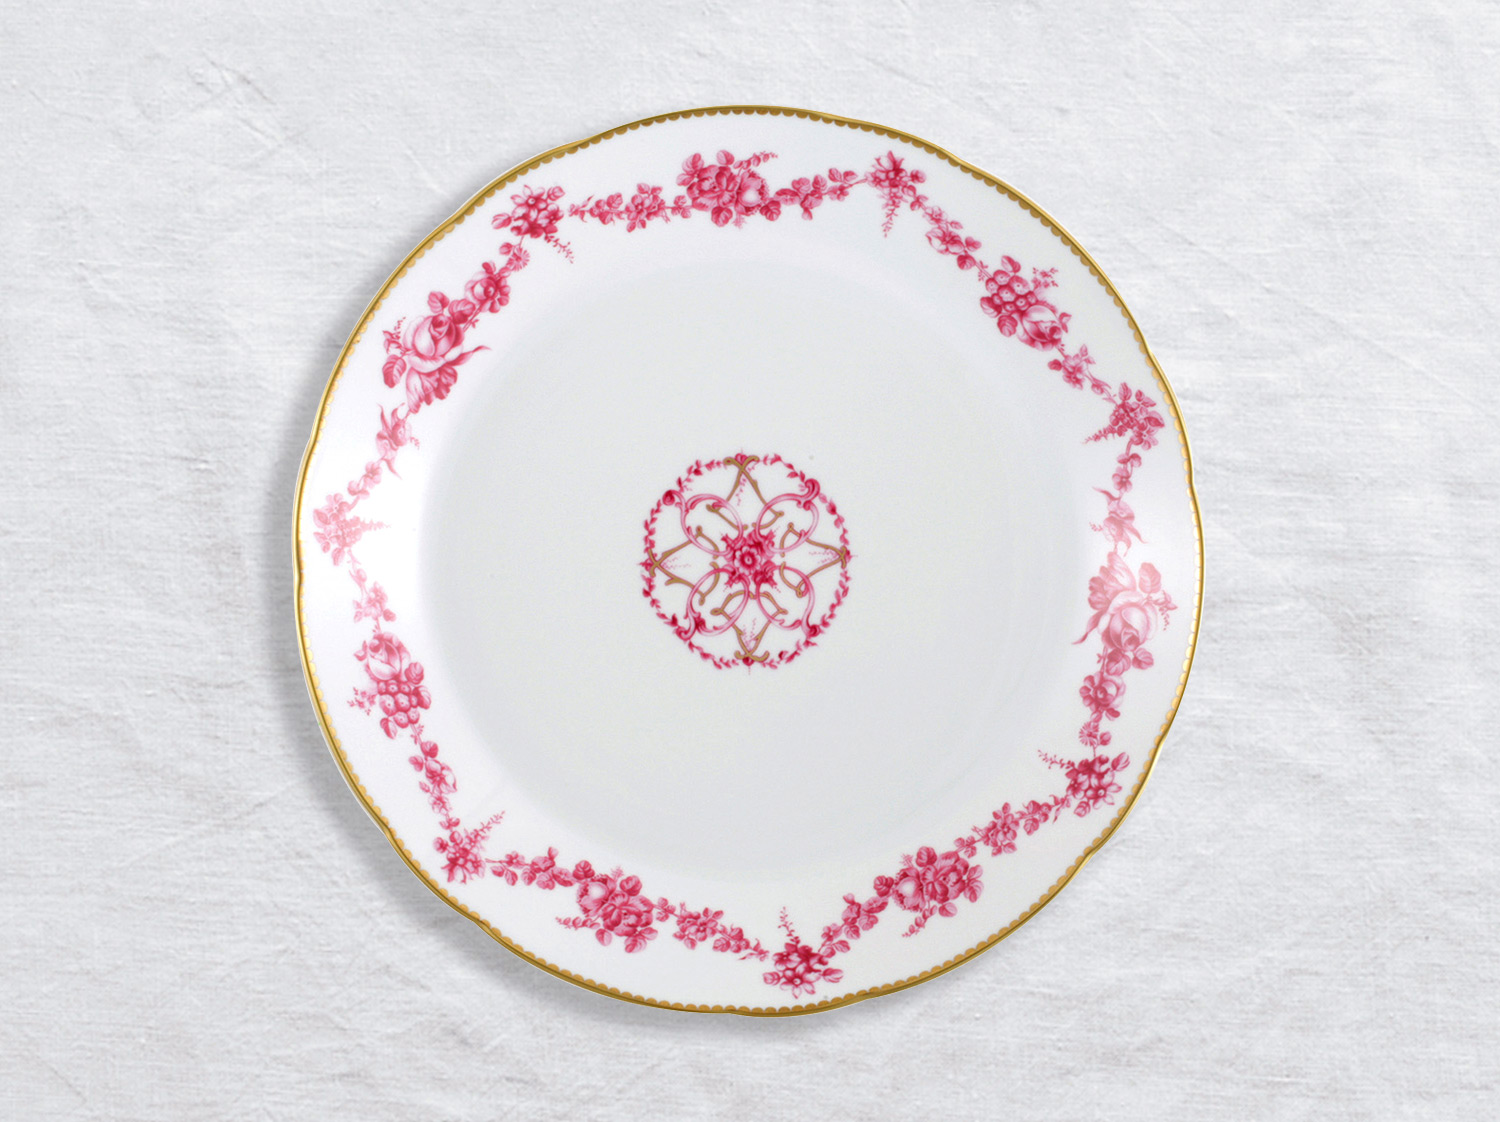 Plat rond creux 29 cm en porcelaine de la collection Louis xv Bernardaud